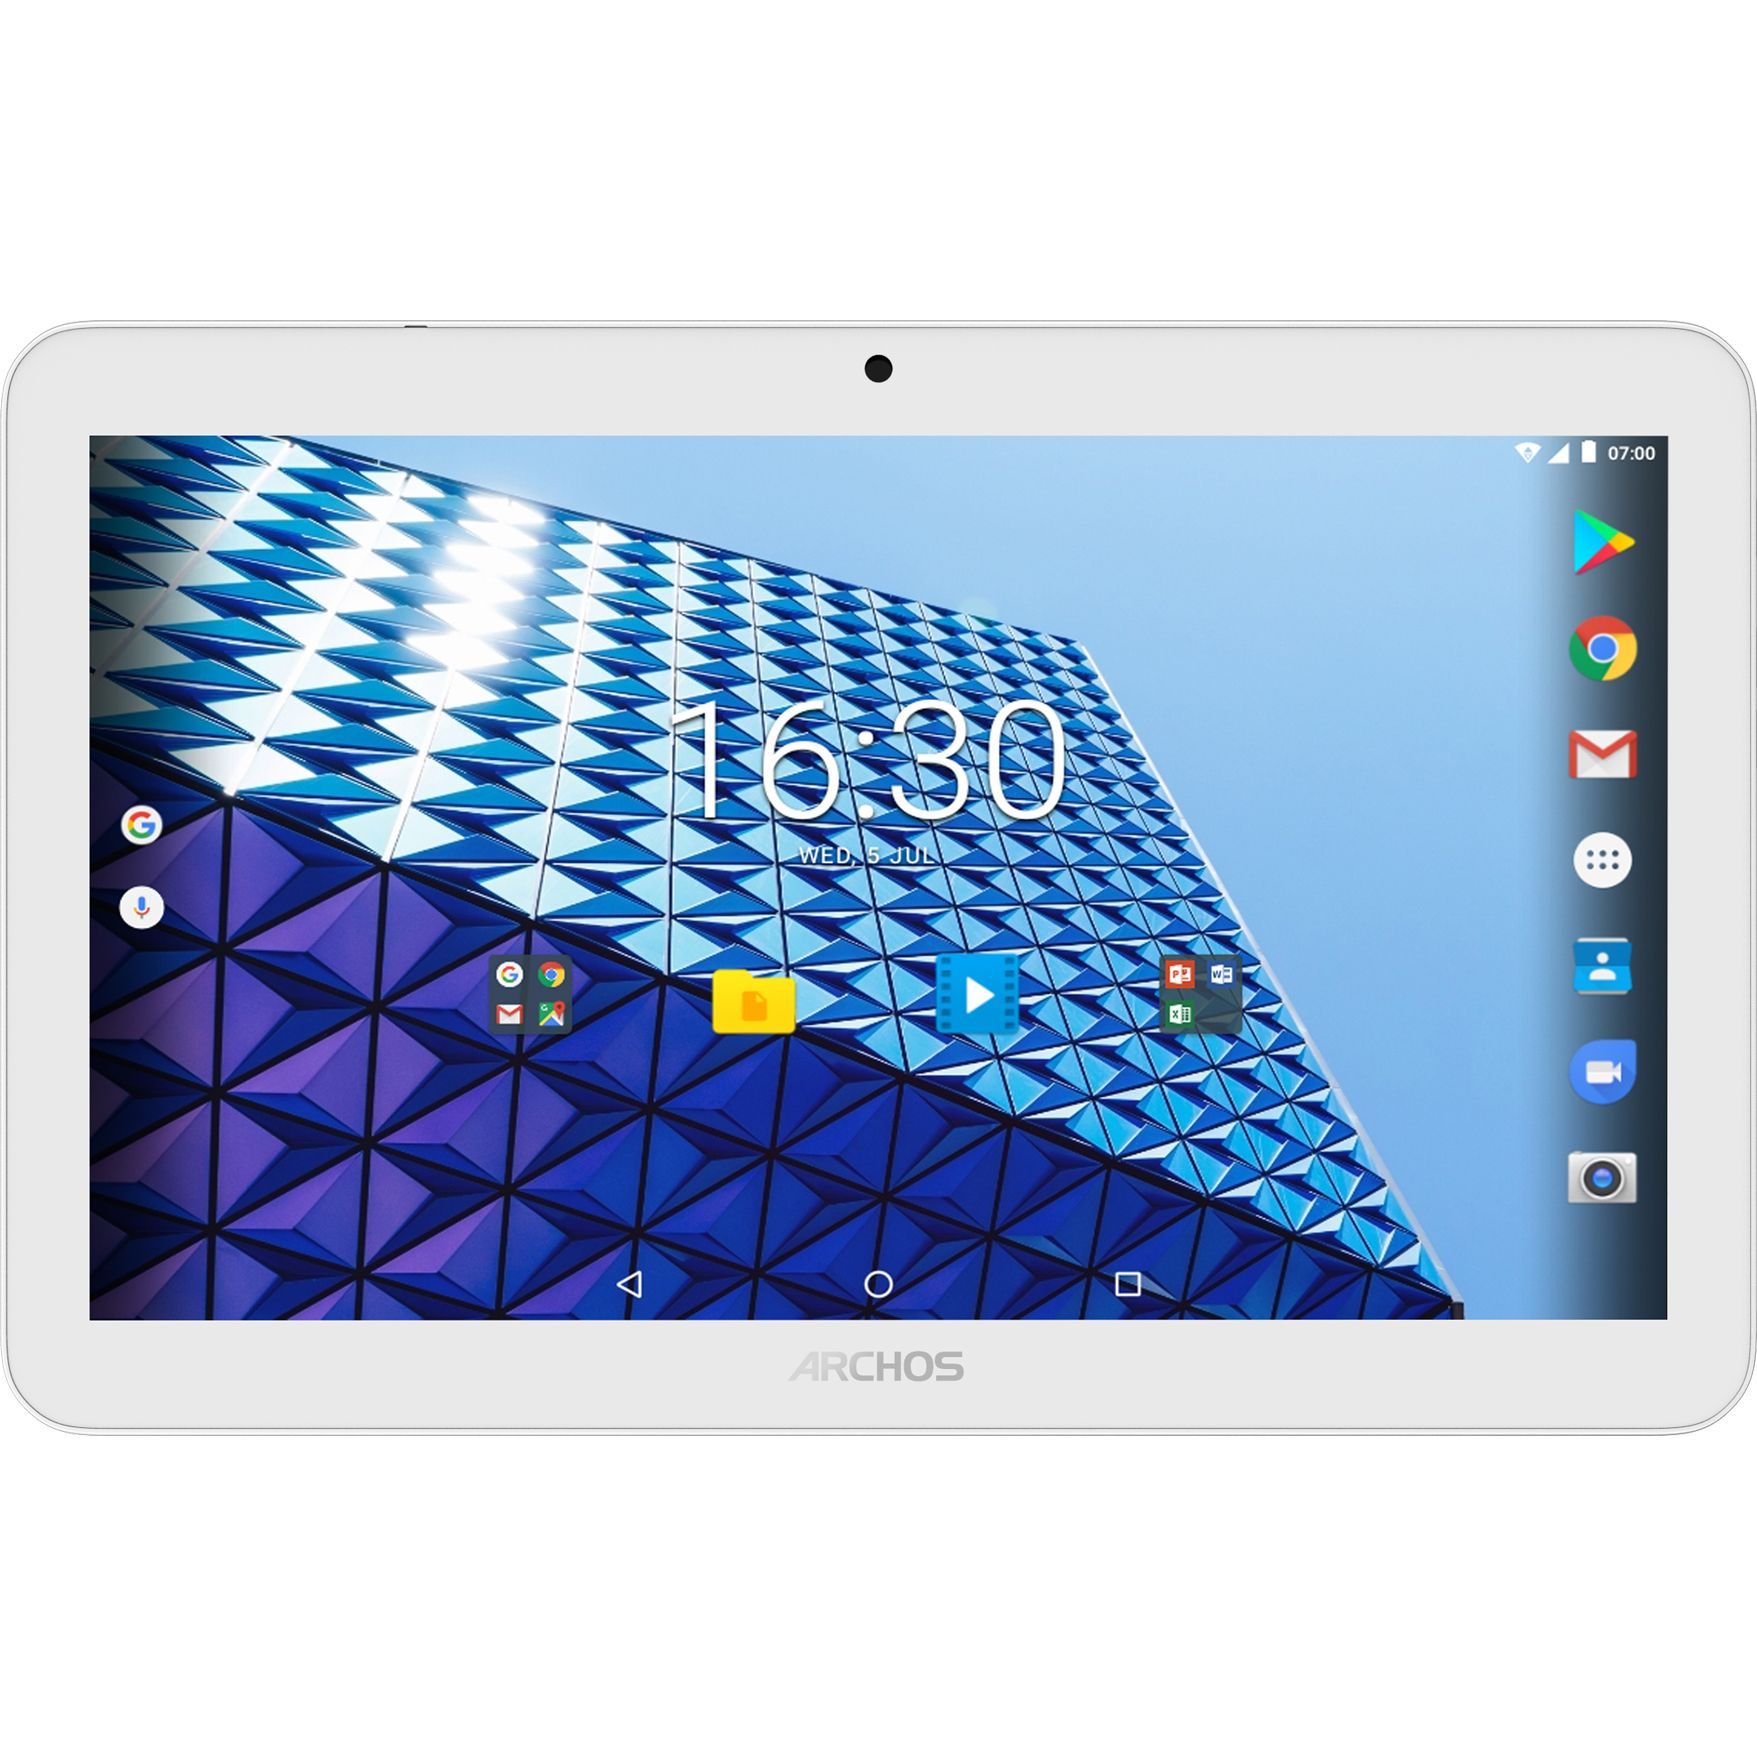 Tableta Archos Access 101 10.1 16GB Flash 1GB RAM WiFi + 3G Silver